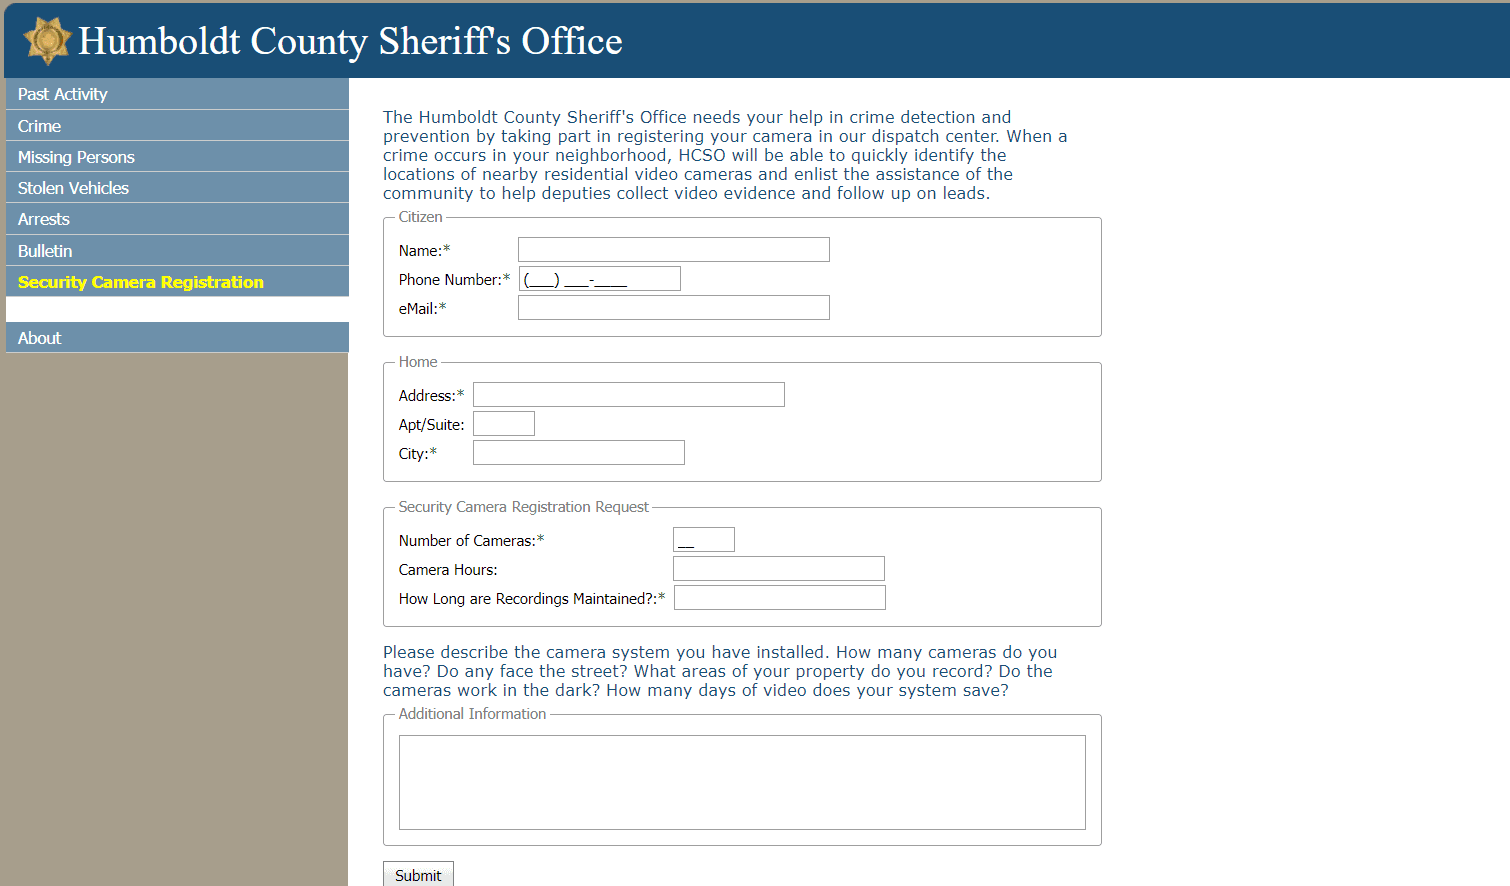 A screenshot of the online security camera registration form